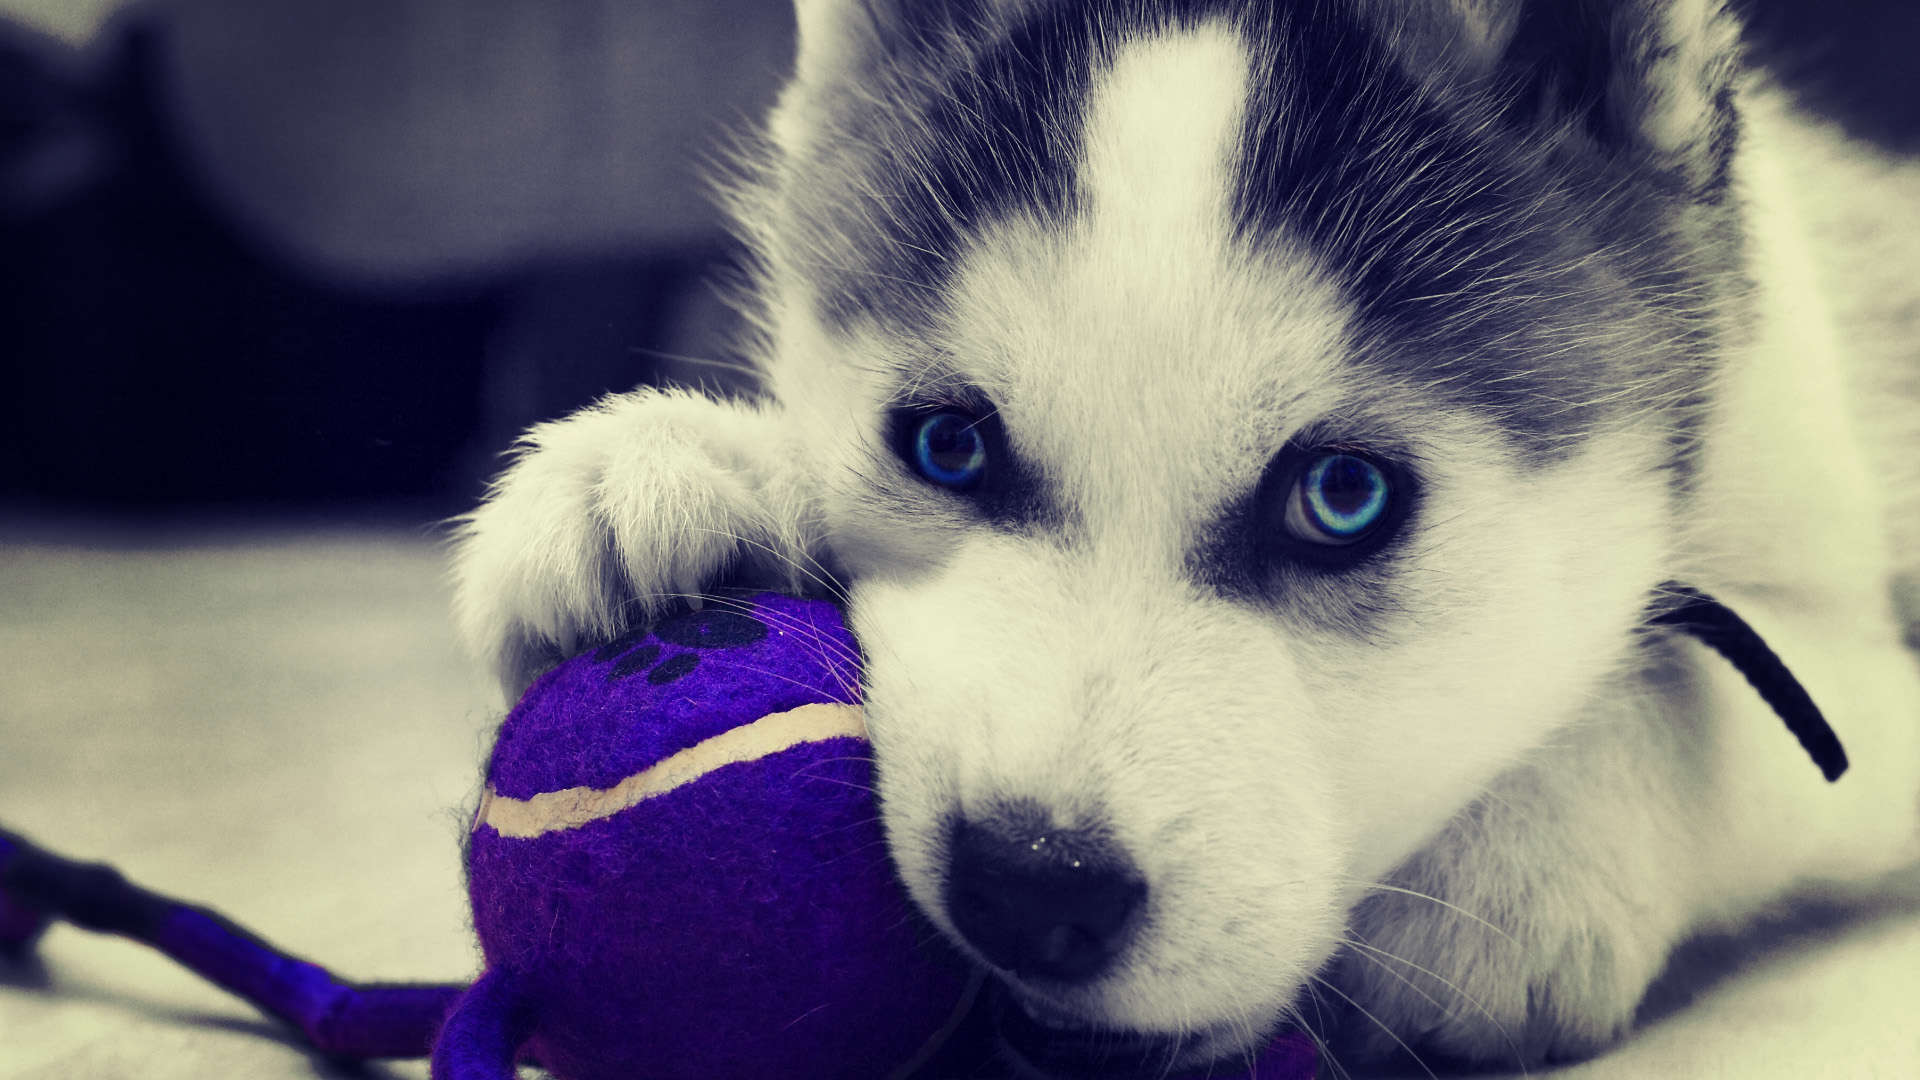 Wallpaper Siberian Husky Puppies Wallpaper HD 1080p Upload at March 1920x1080